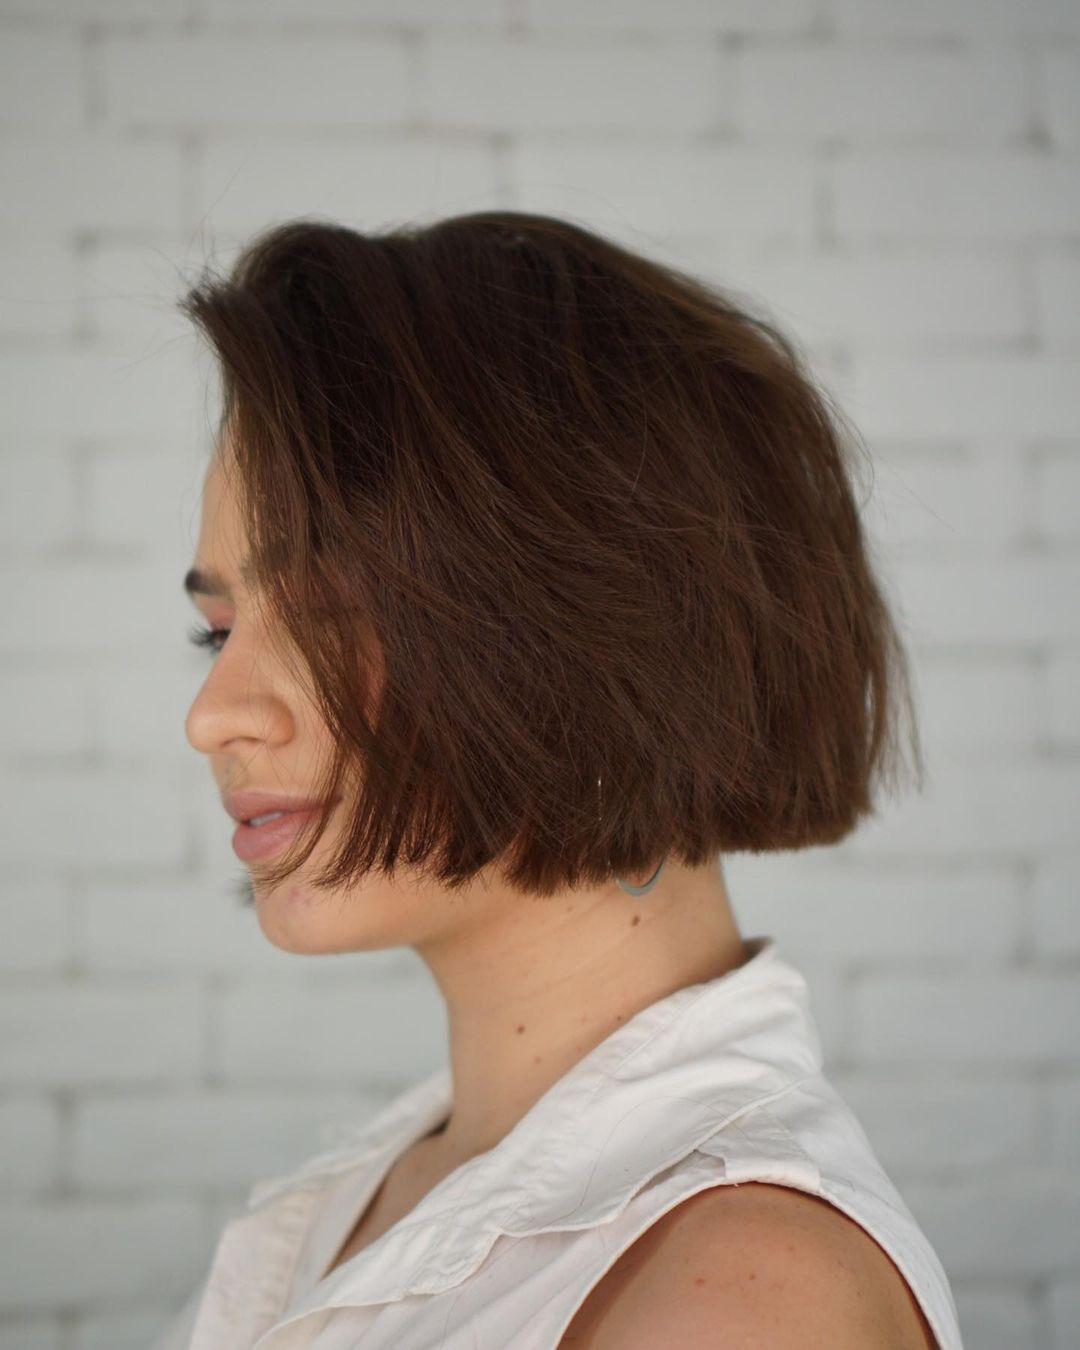 layered short hairstyles that can be preferred for date nights 14